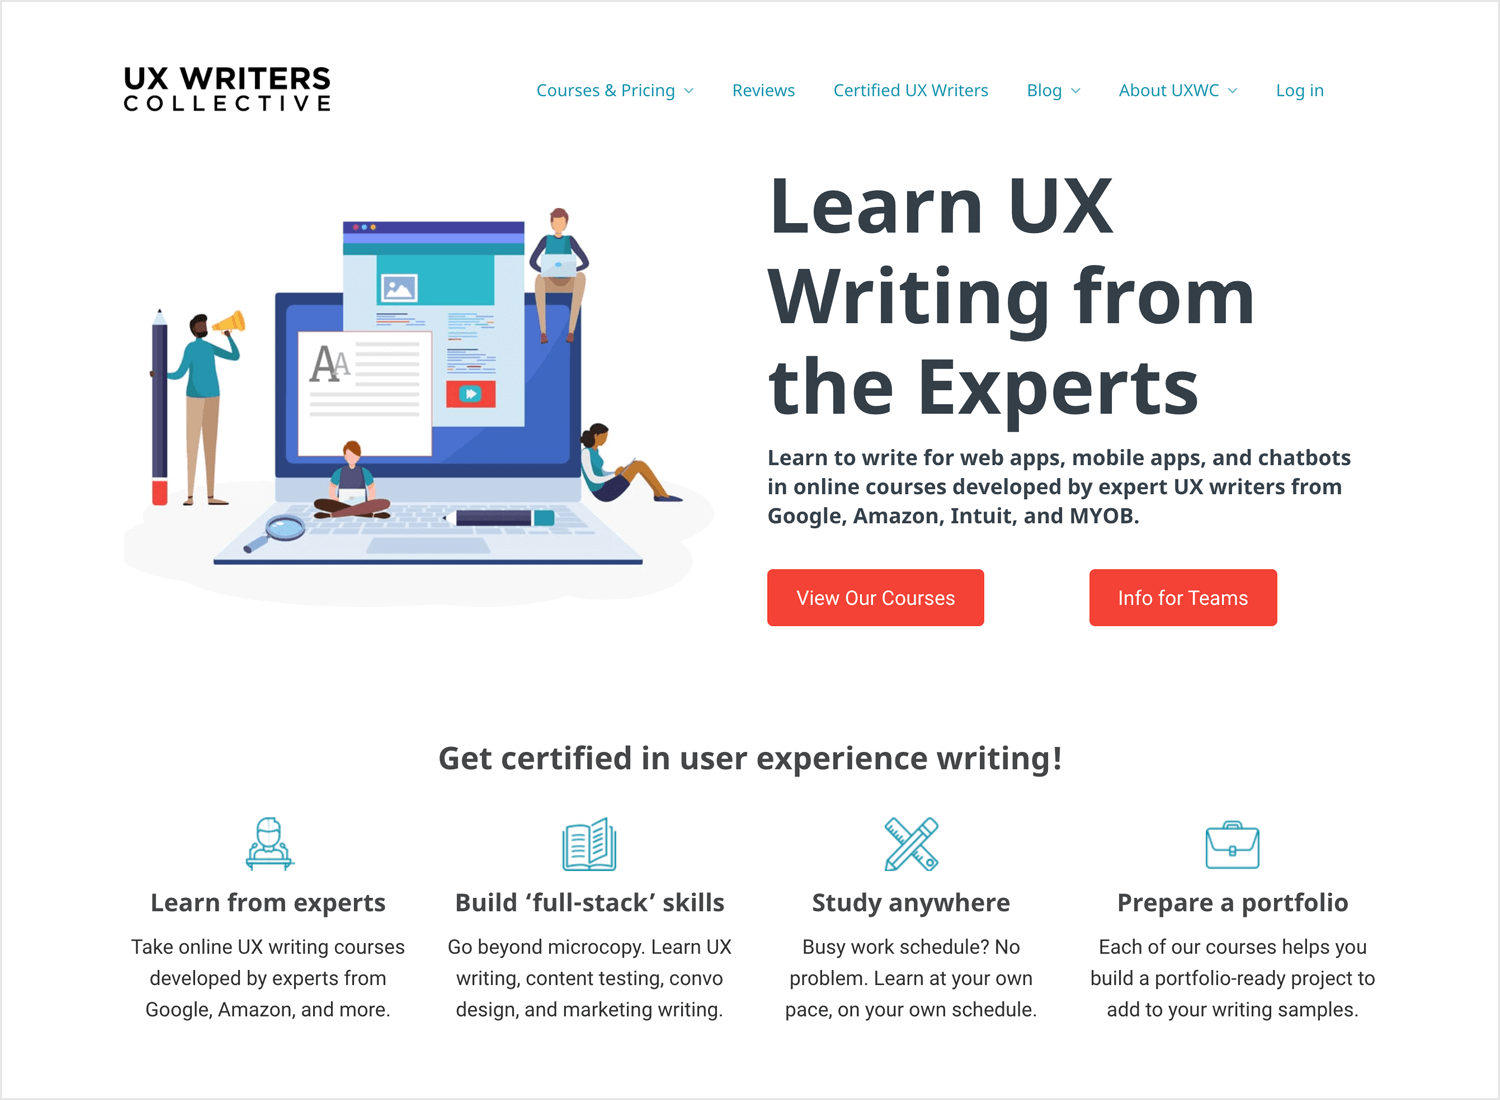 UX Writers Collective course